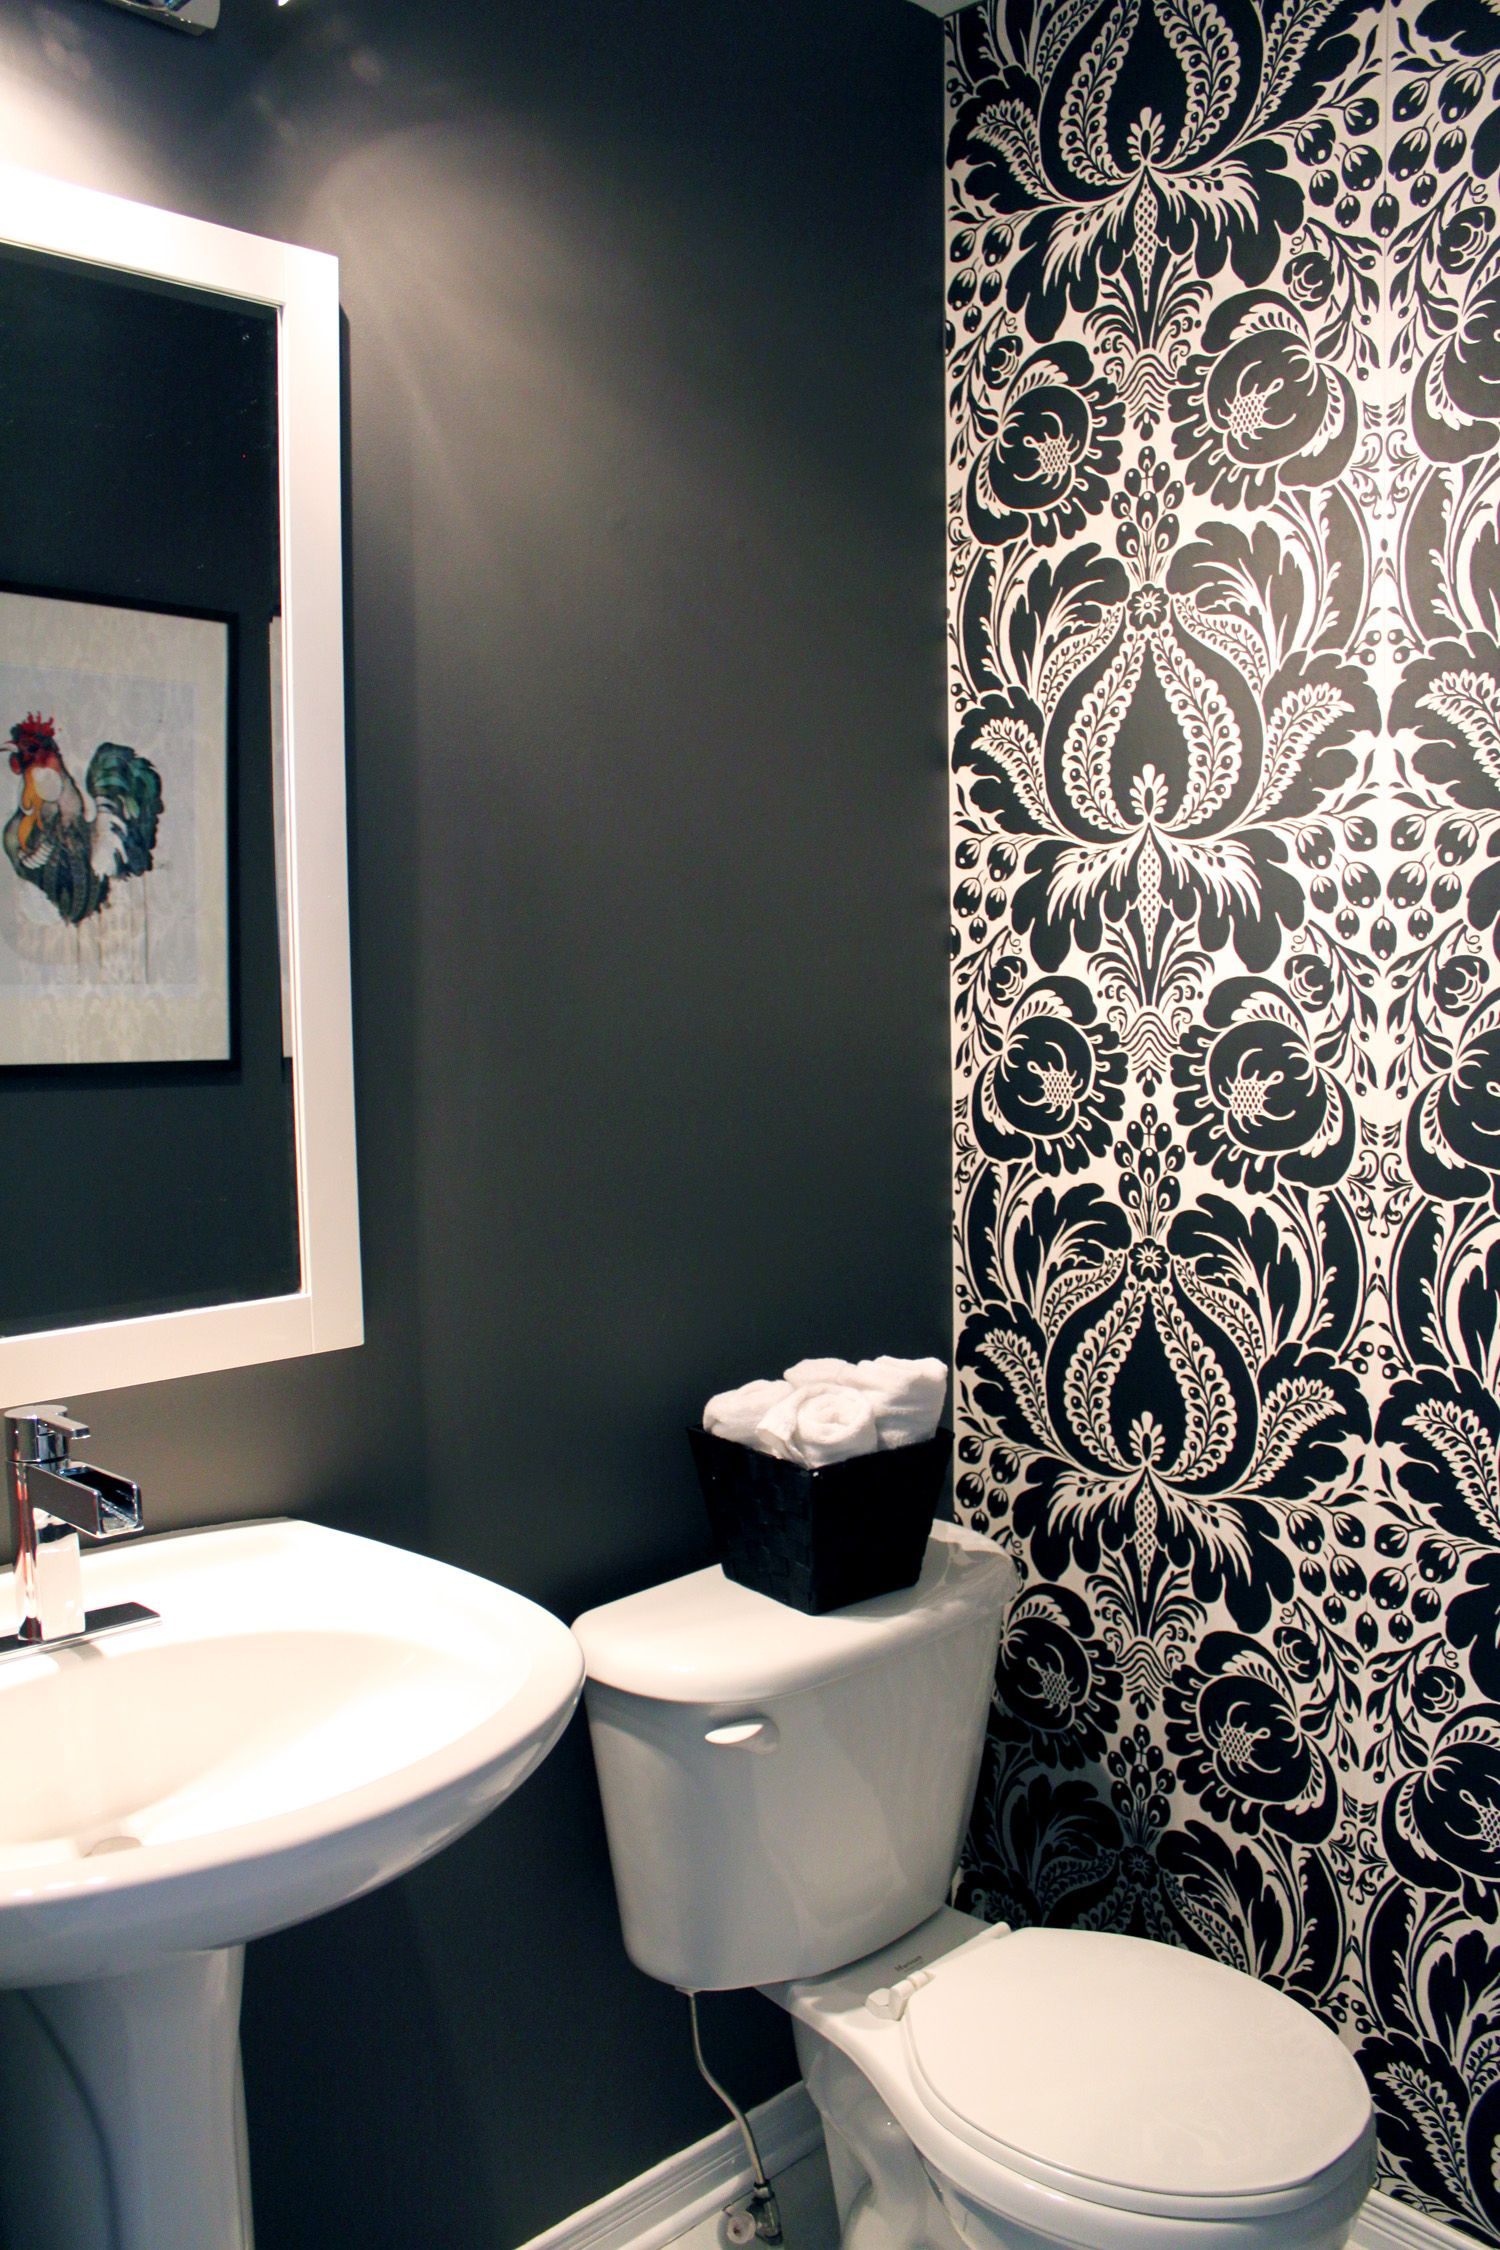 I Like The Idea Of Doing 1 Wall In A Powder Room With A Really Bold ·  Damask BathroomBathroom ColorsBathroom ...